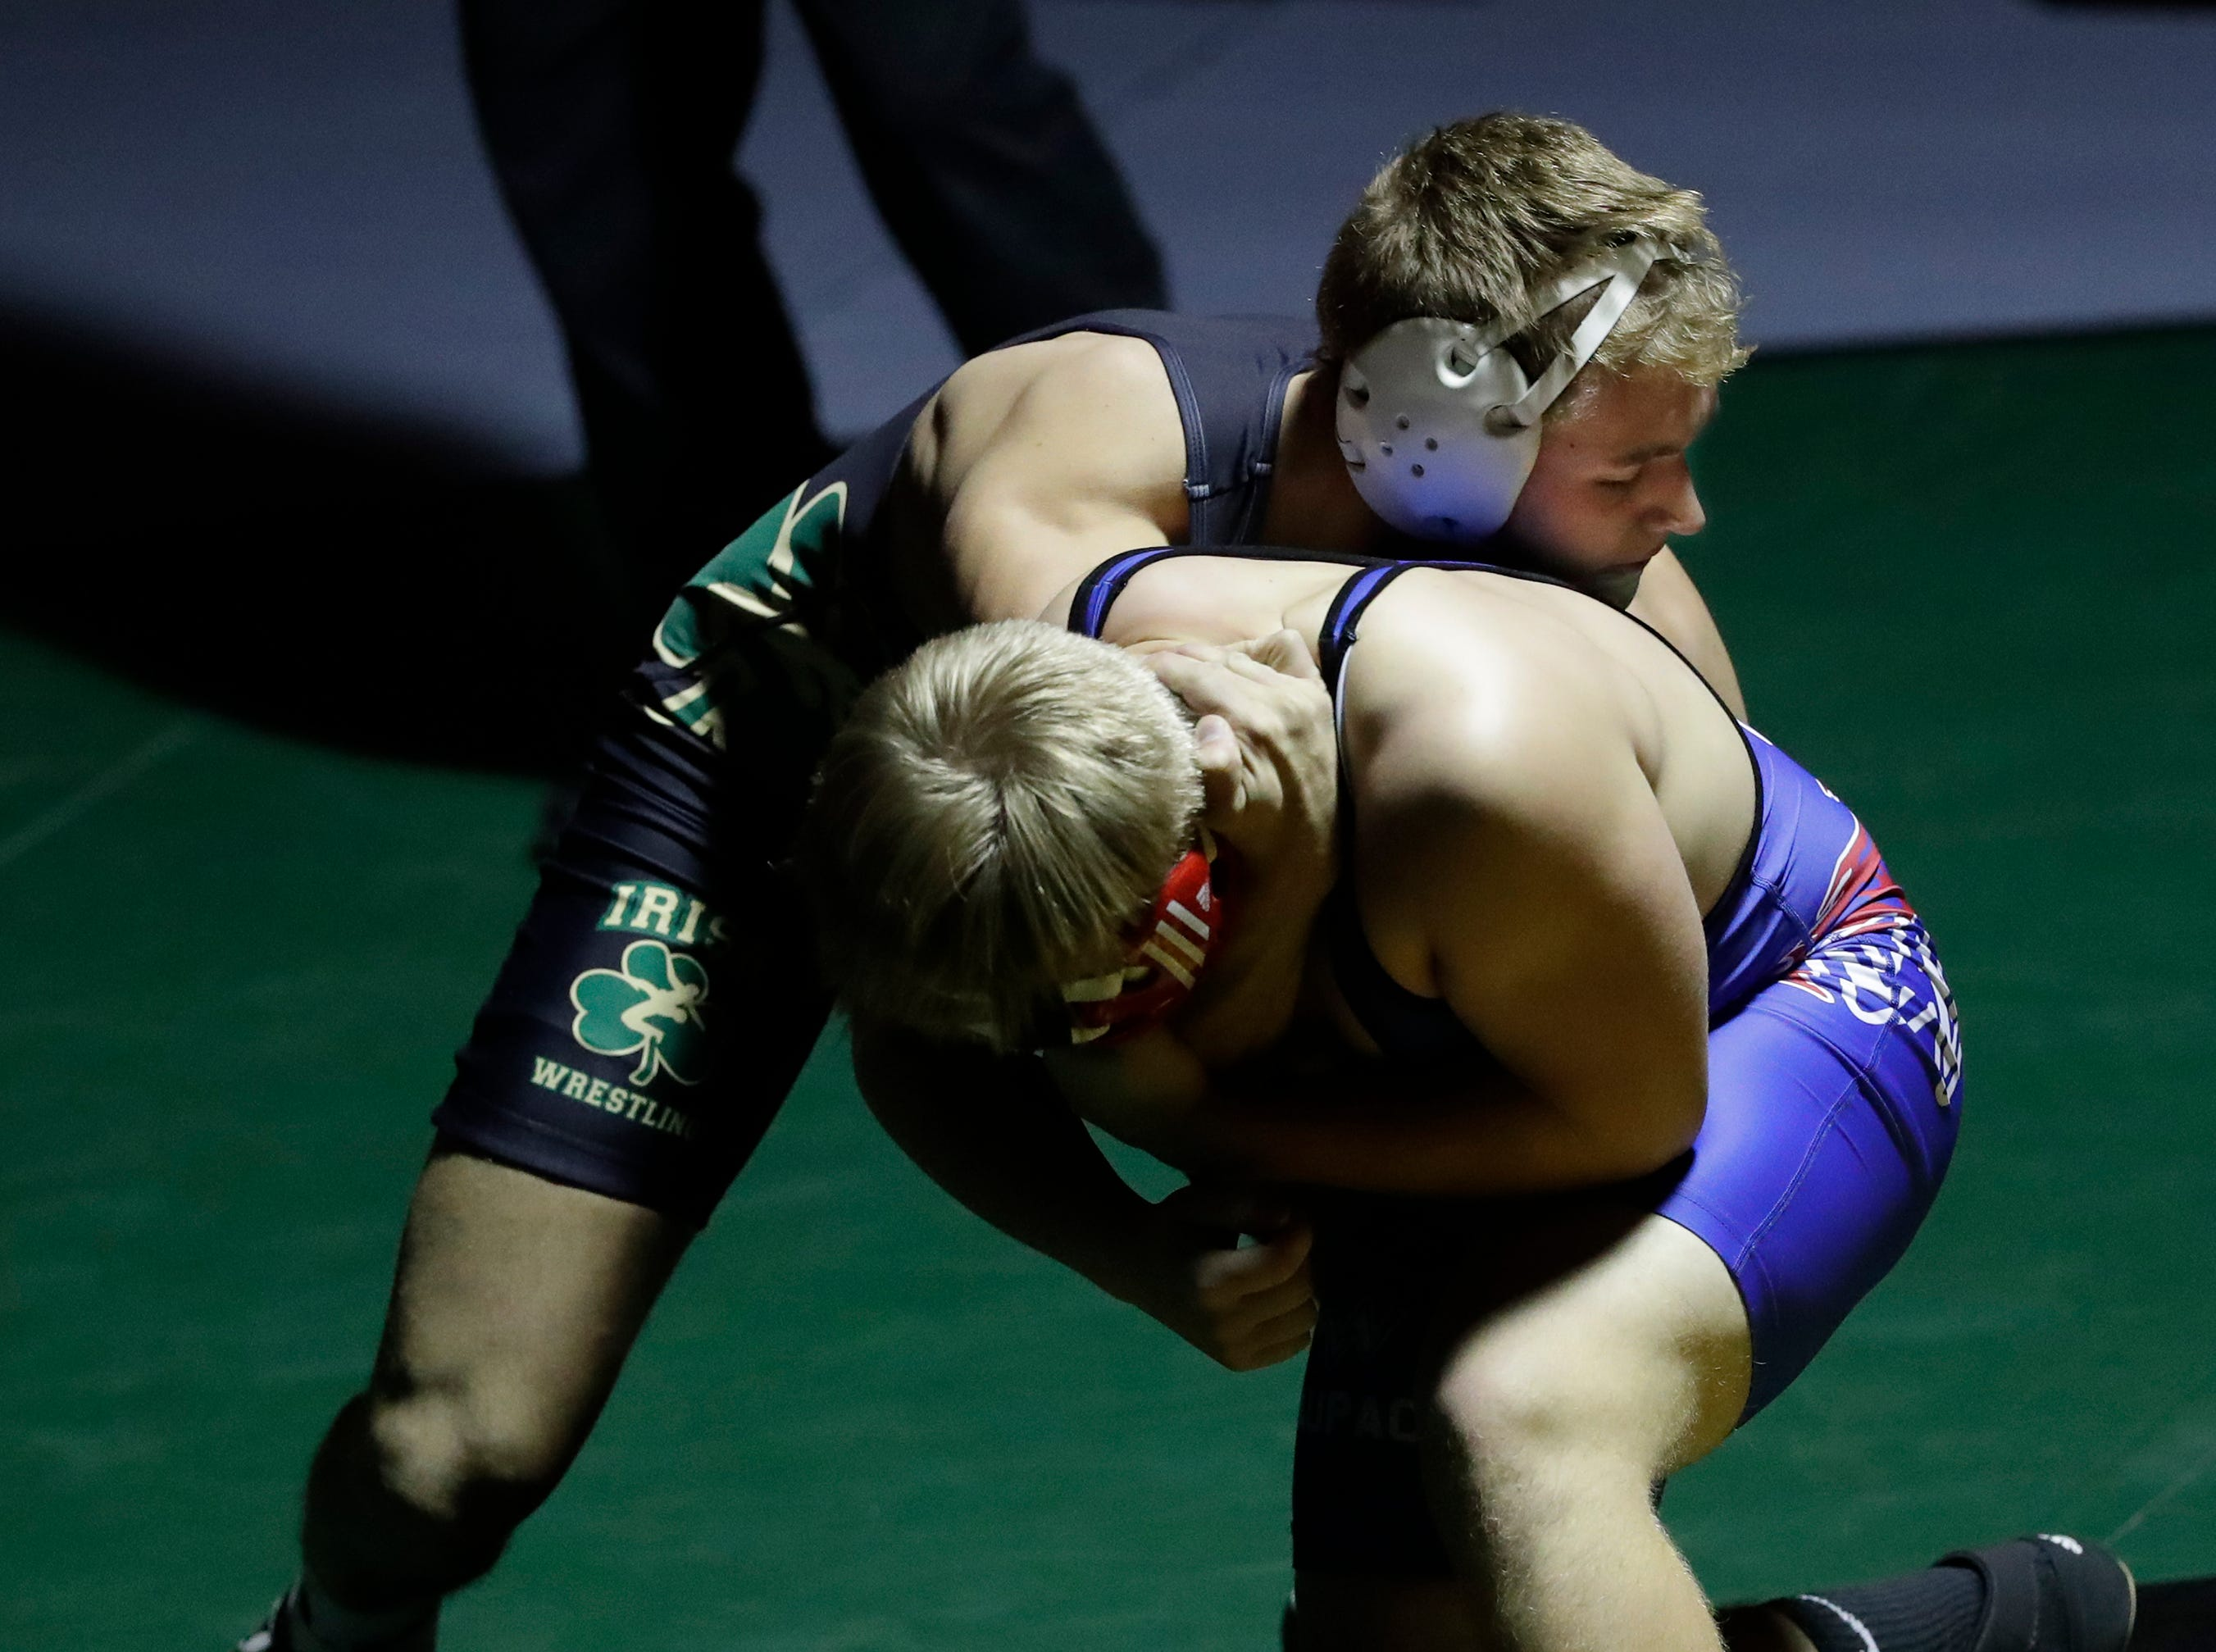 Freedom High School's Sam Peters, back, wrestles against Waupaca High School's Gabe Pierotti during their 170-lb wrestling match Thursday, December 6, 2018, in Freedom, Wis. 